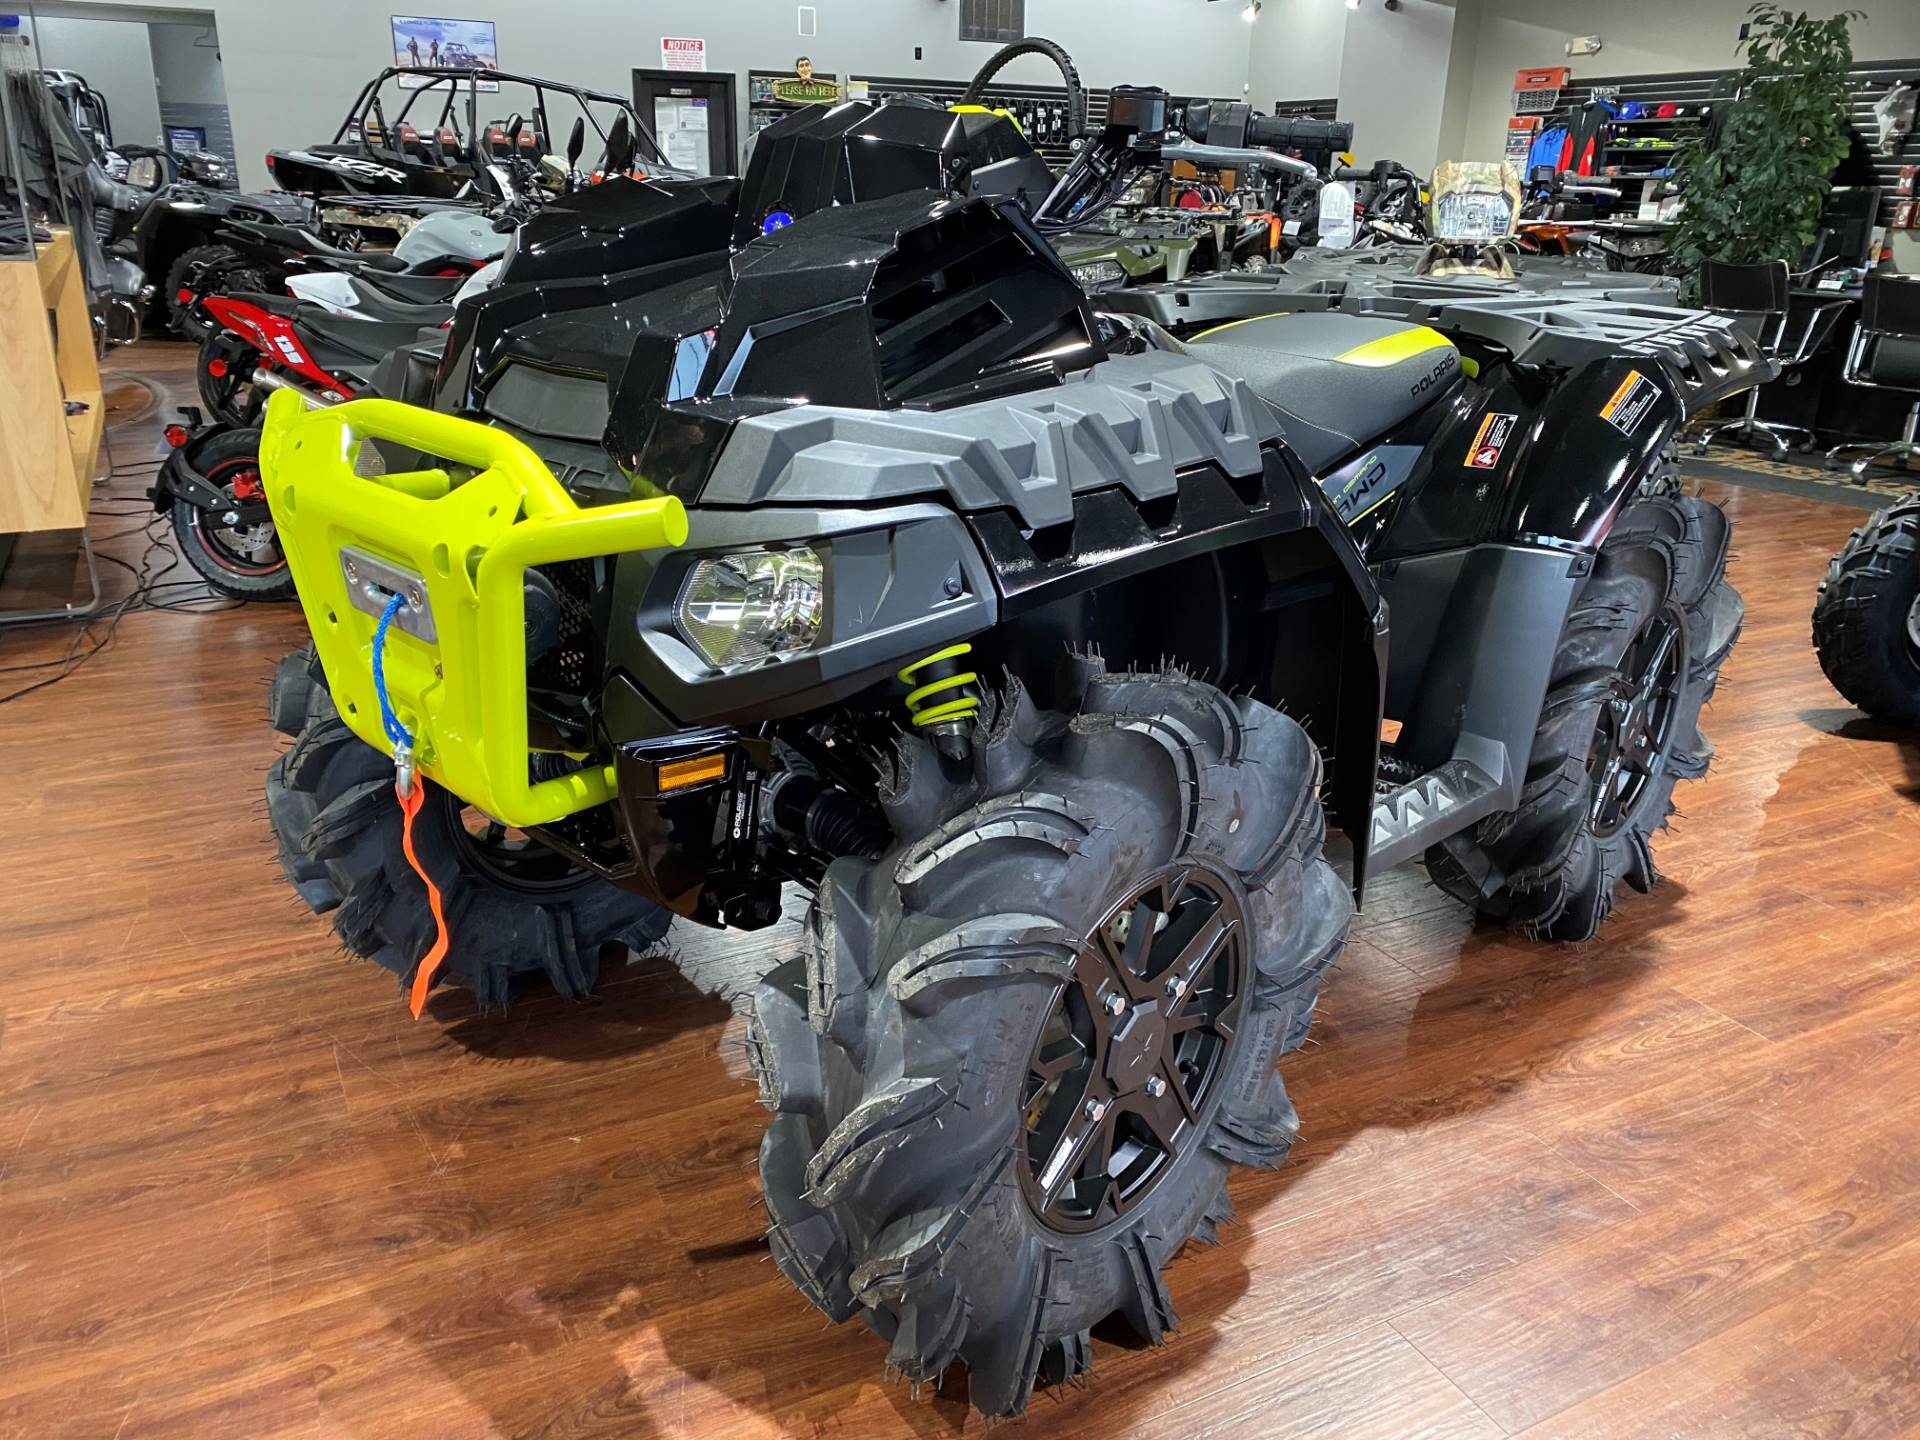 2020 Polaris Sportsman XP 1000 High Lifter Edition in Greer, South Carolina - Photo 6